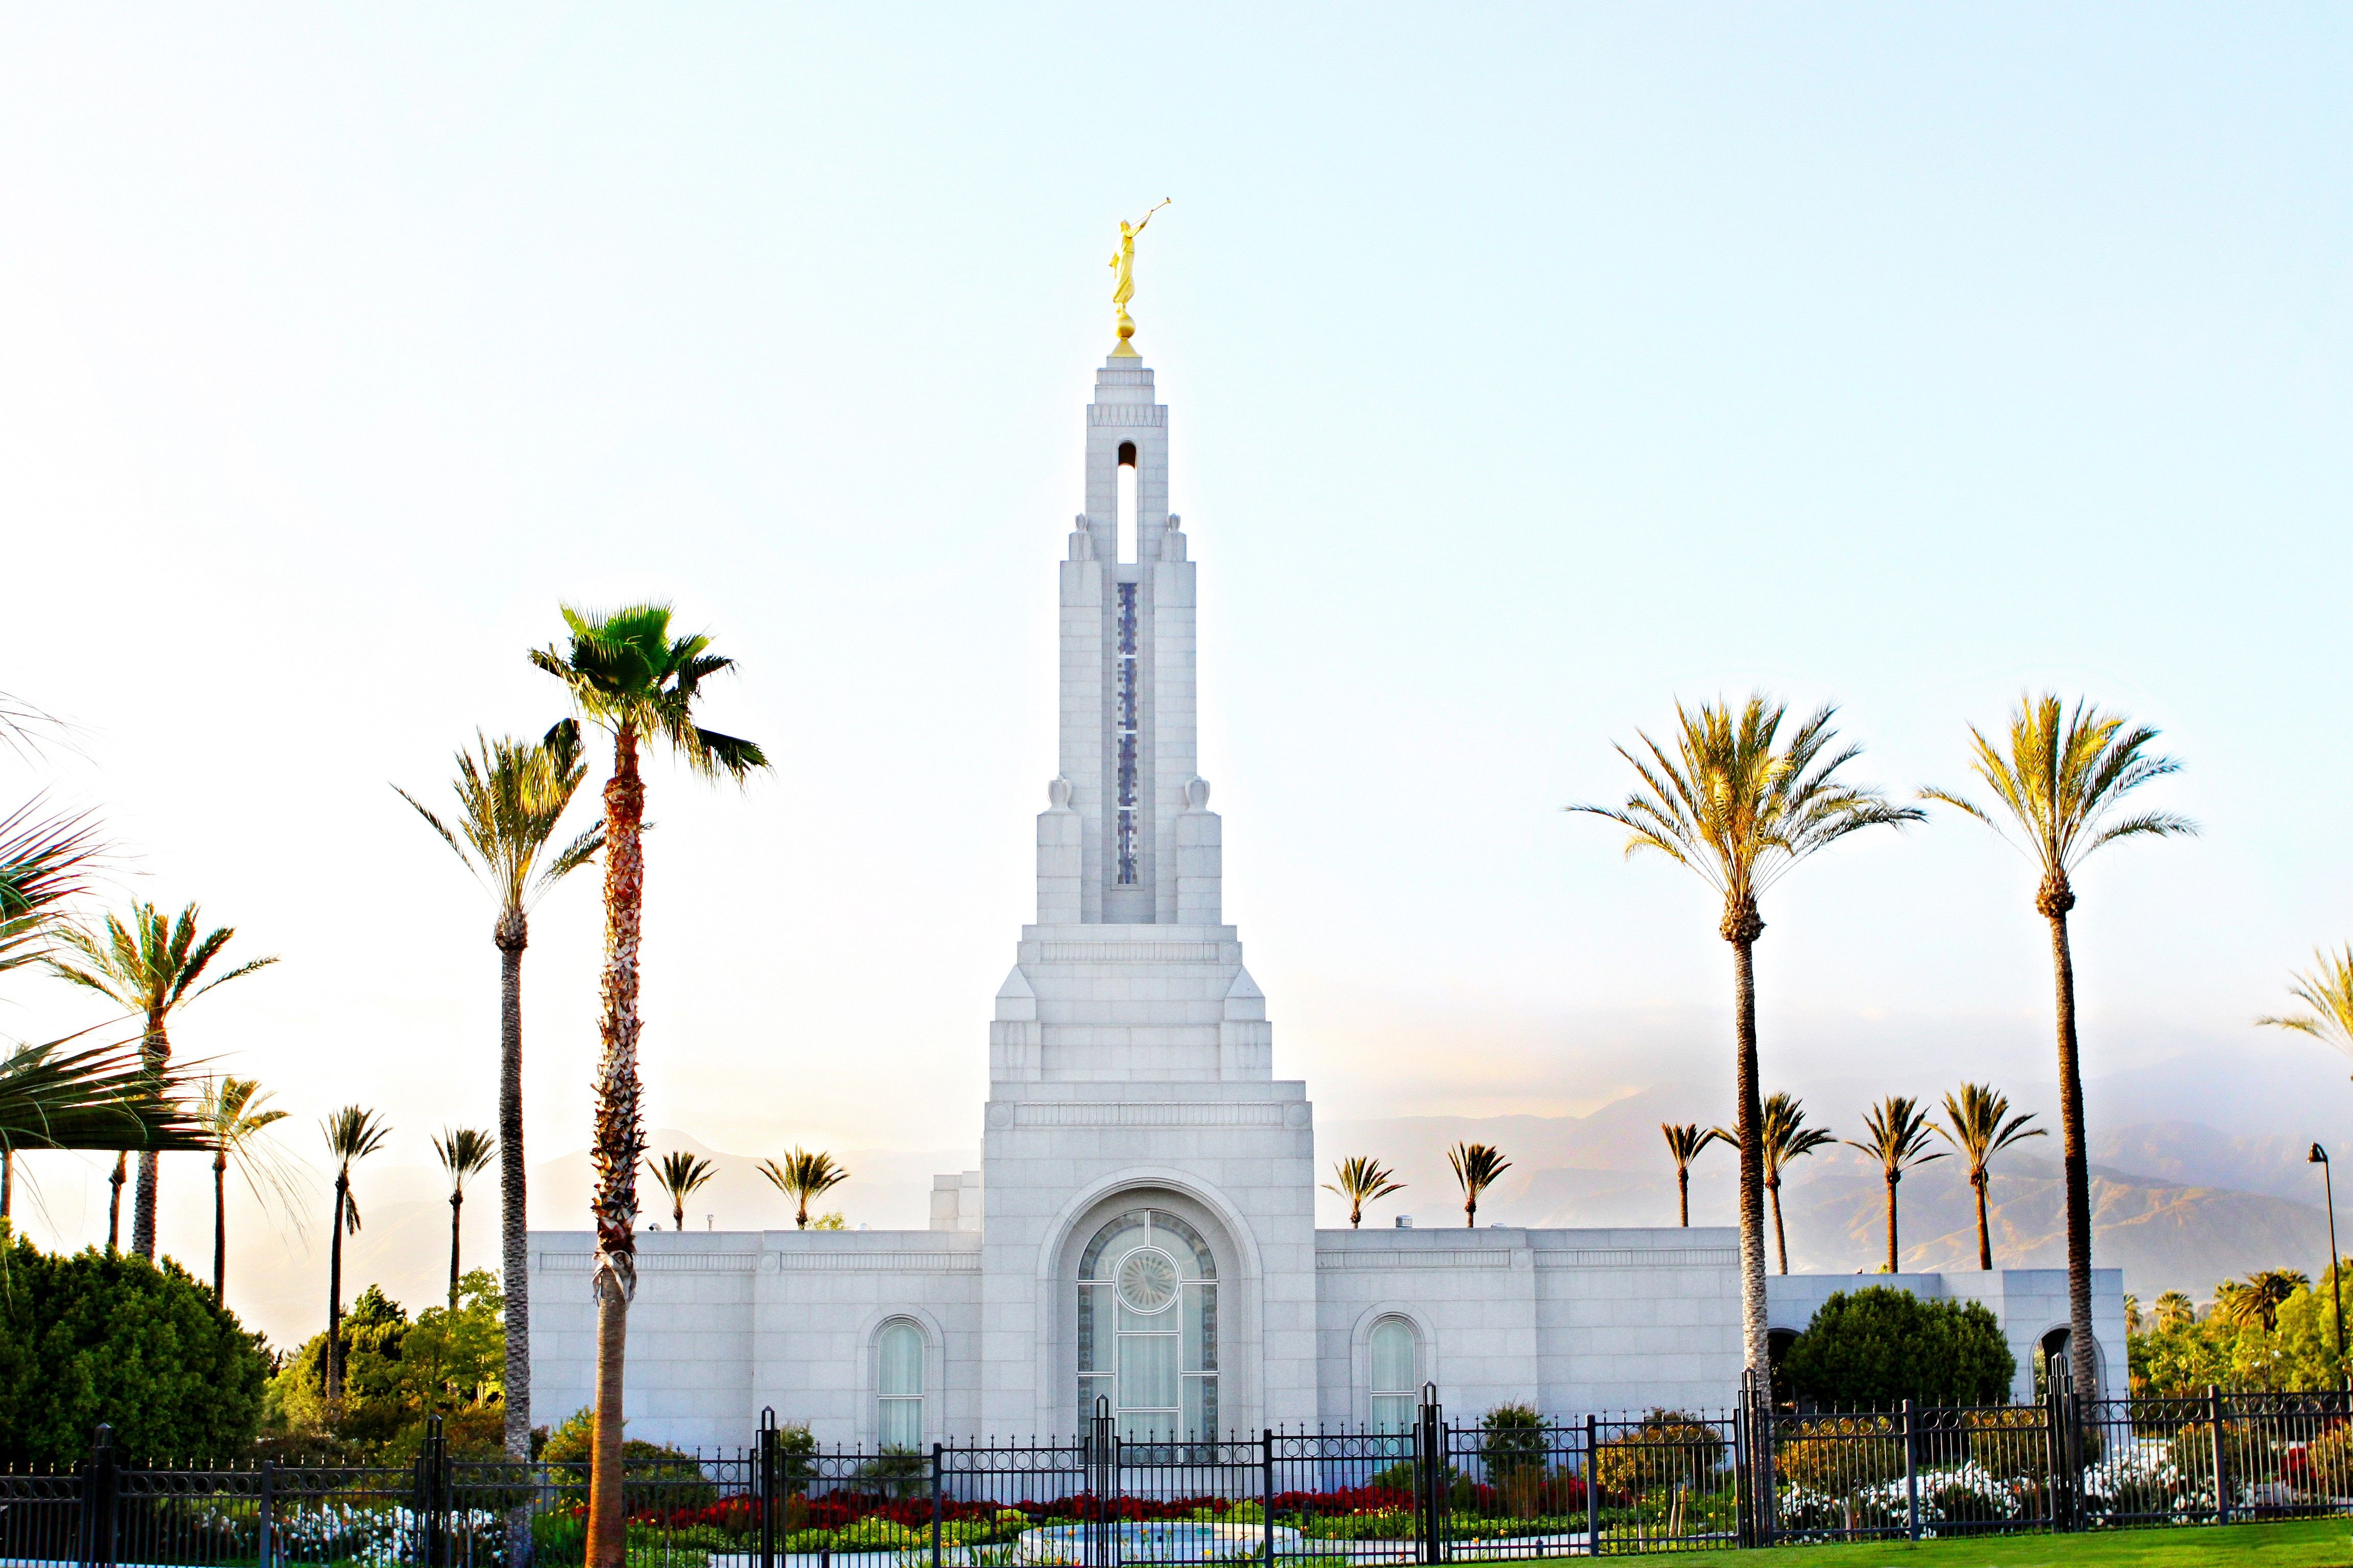 The Redlands California Temple, with palm trees growing all around it.